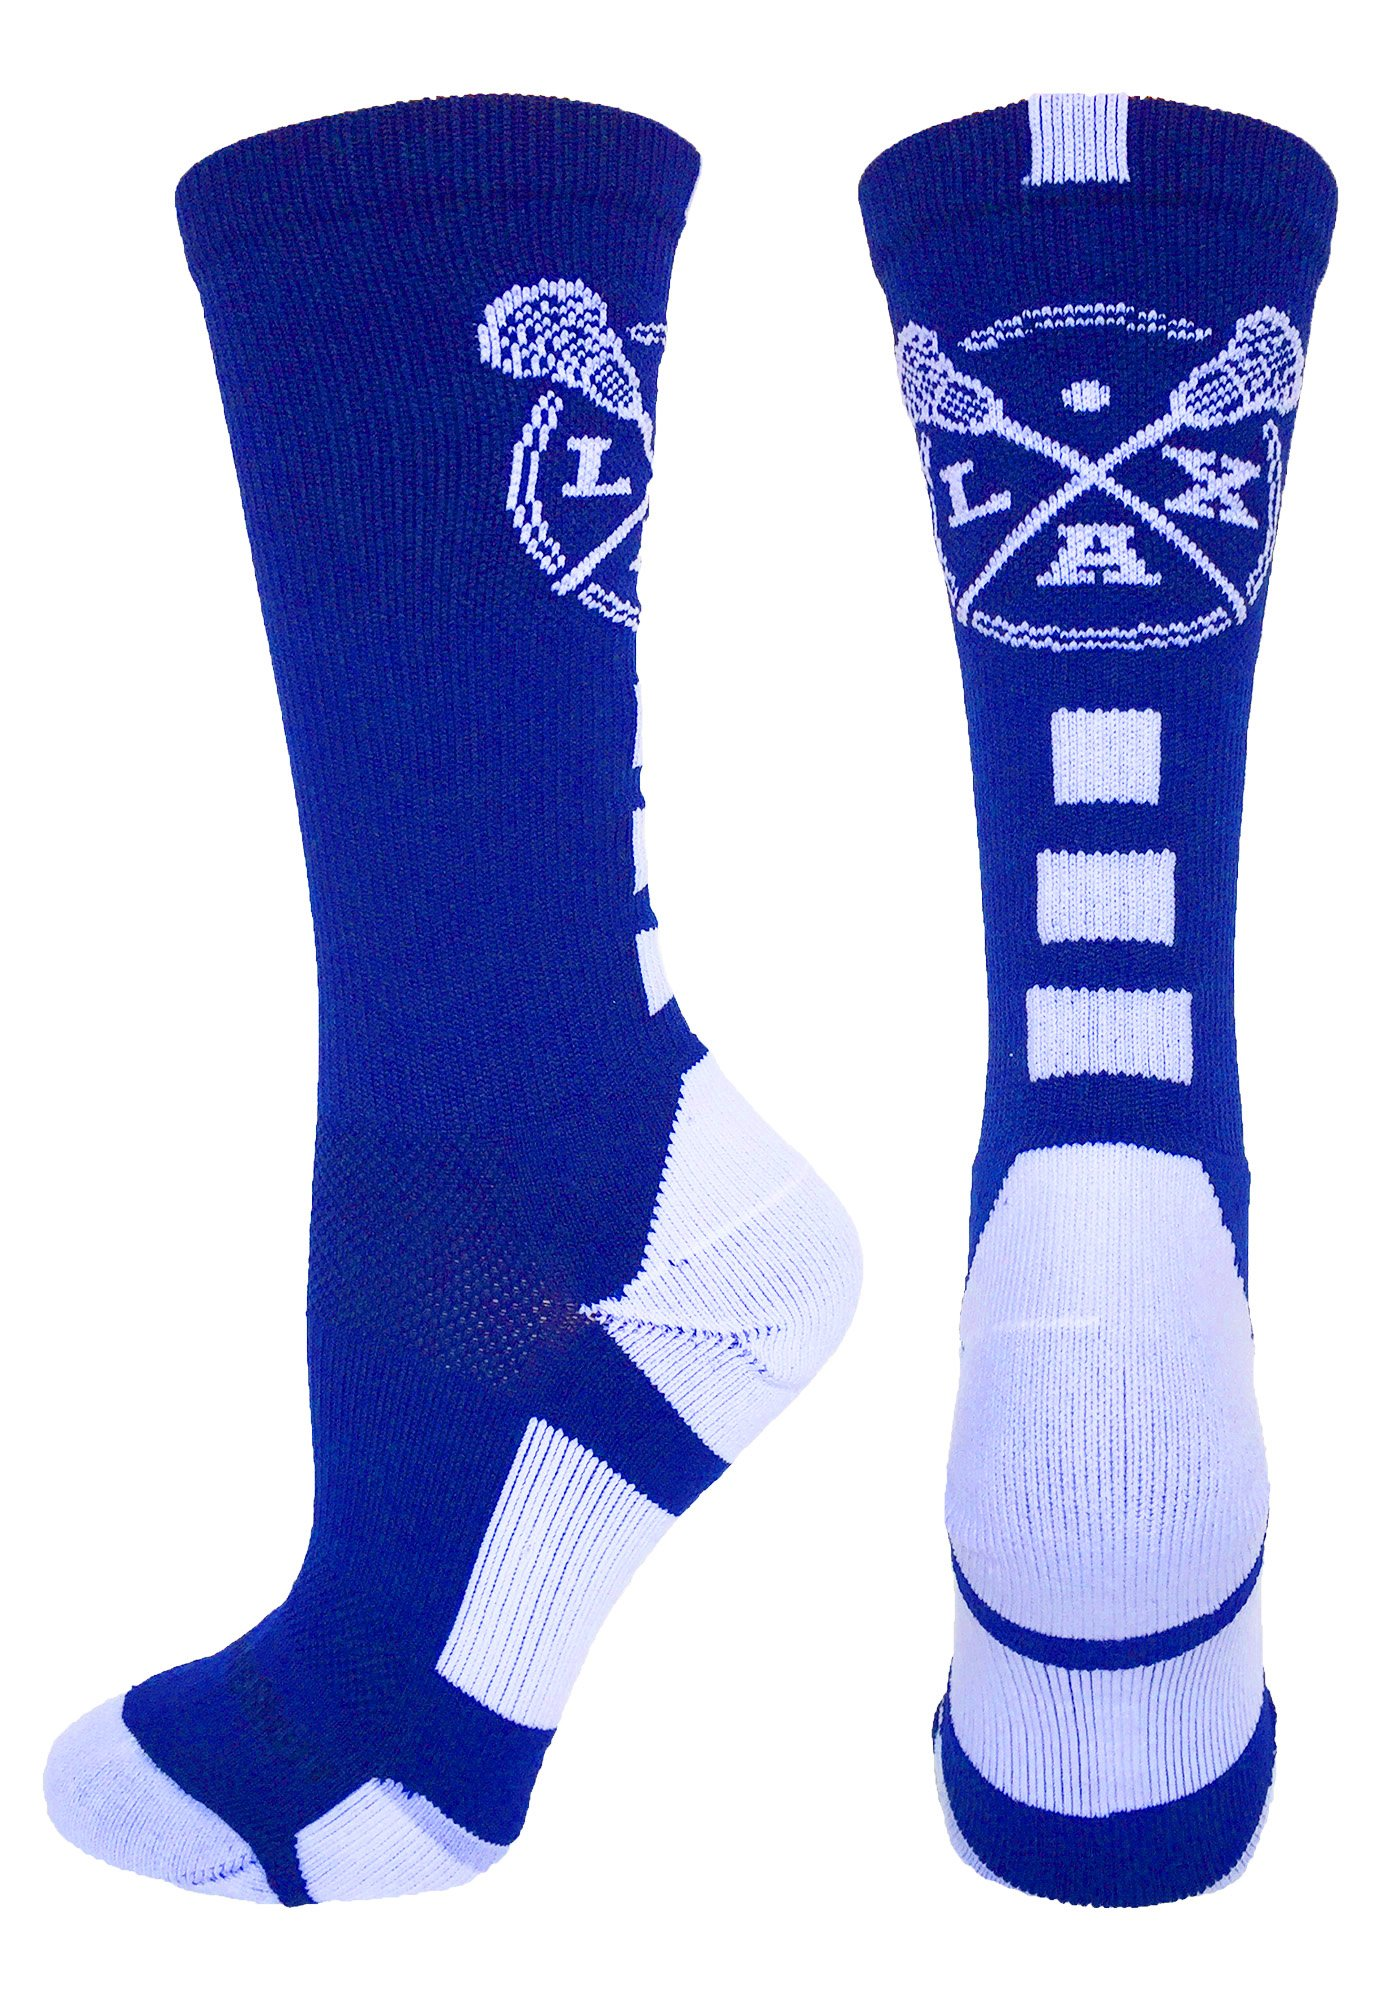 MadSportsStuff LAX Lacrosse Socks with Lacrosse Sticks Athletic Crew Socks (Royal/White, Large) by MadSportsStuff